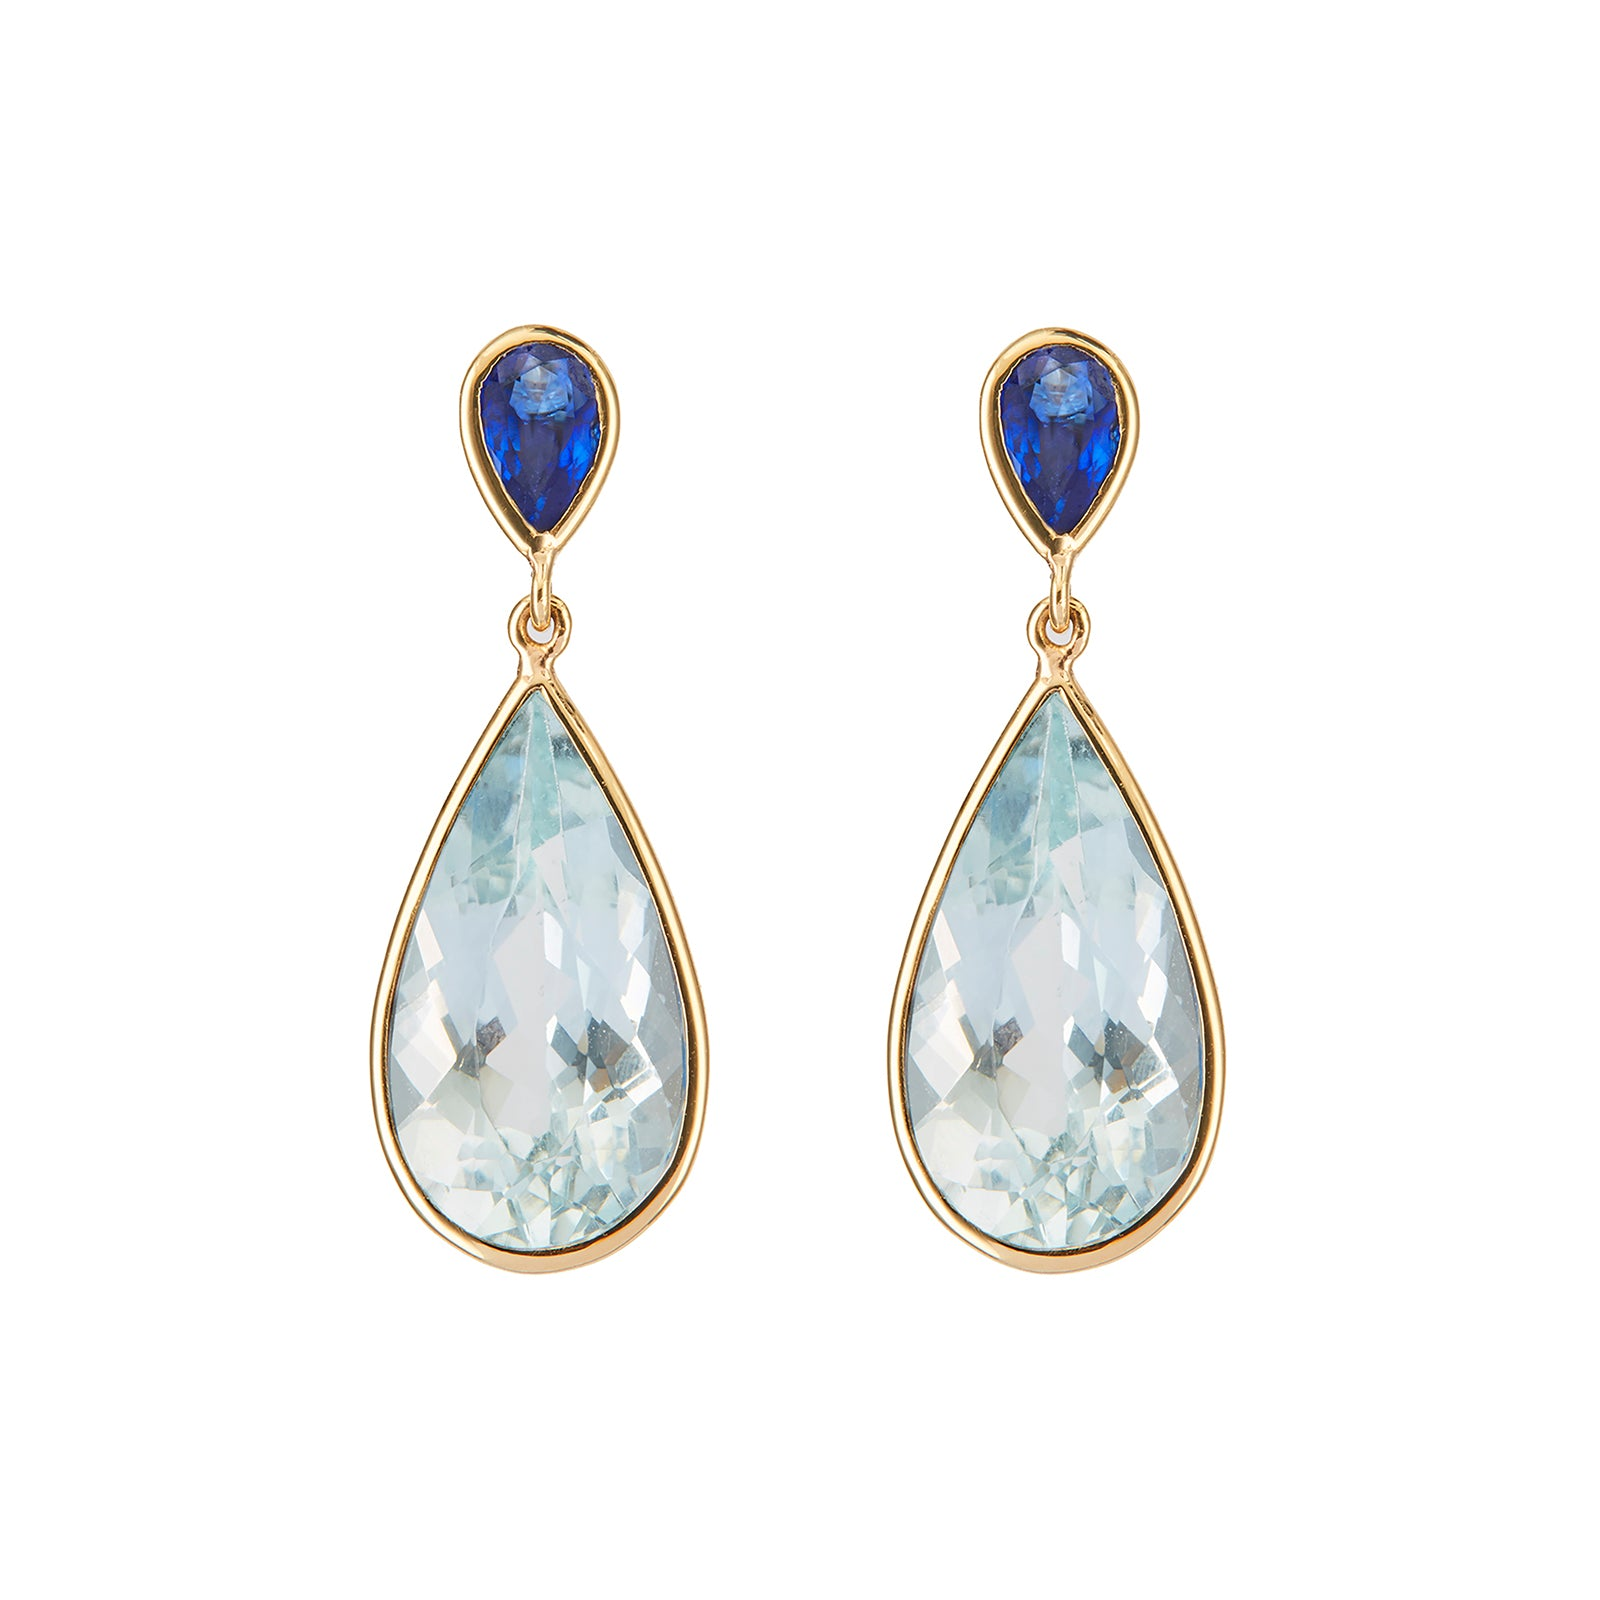 YI Collection Pear Earrings - Sapphire & Aquamarine - Earrings - Broken English Jewelry